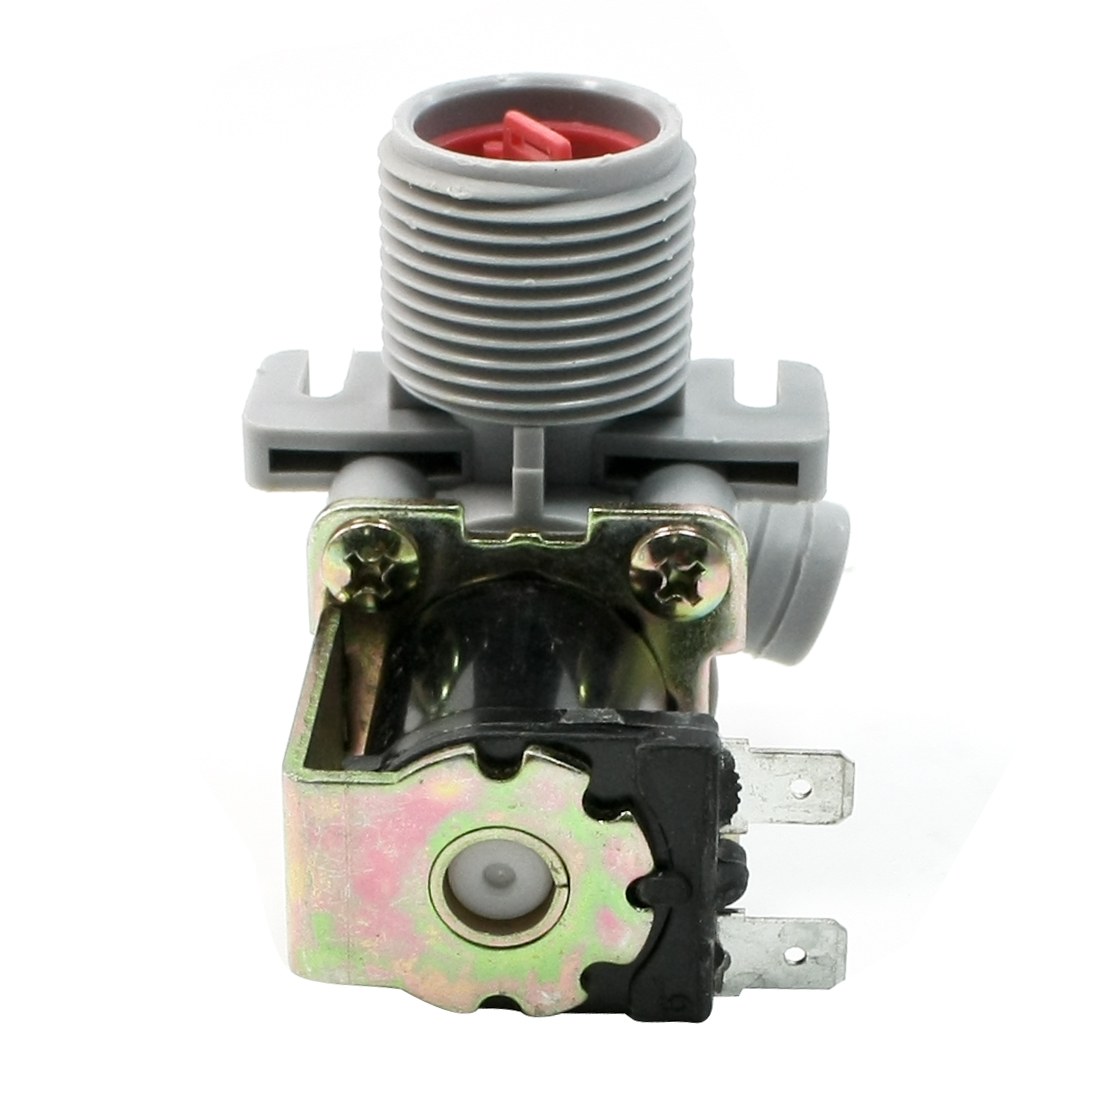 AC 220V 50Hz Filter Net Water Inlet Solenoid Valve for Xiaotiane Washing Machine